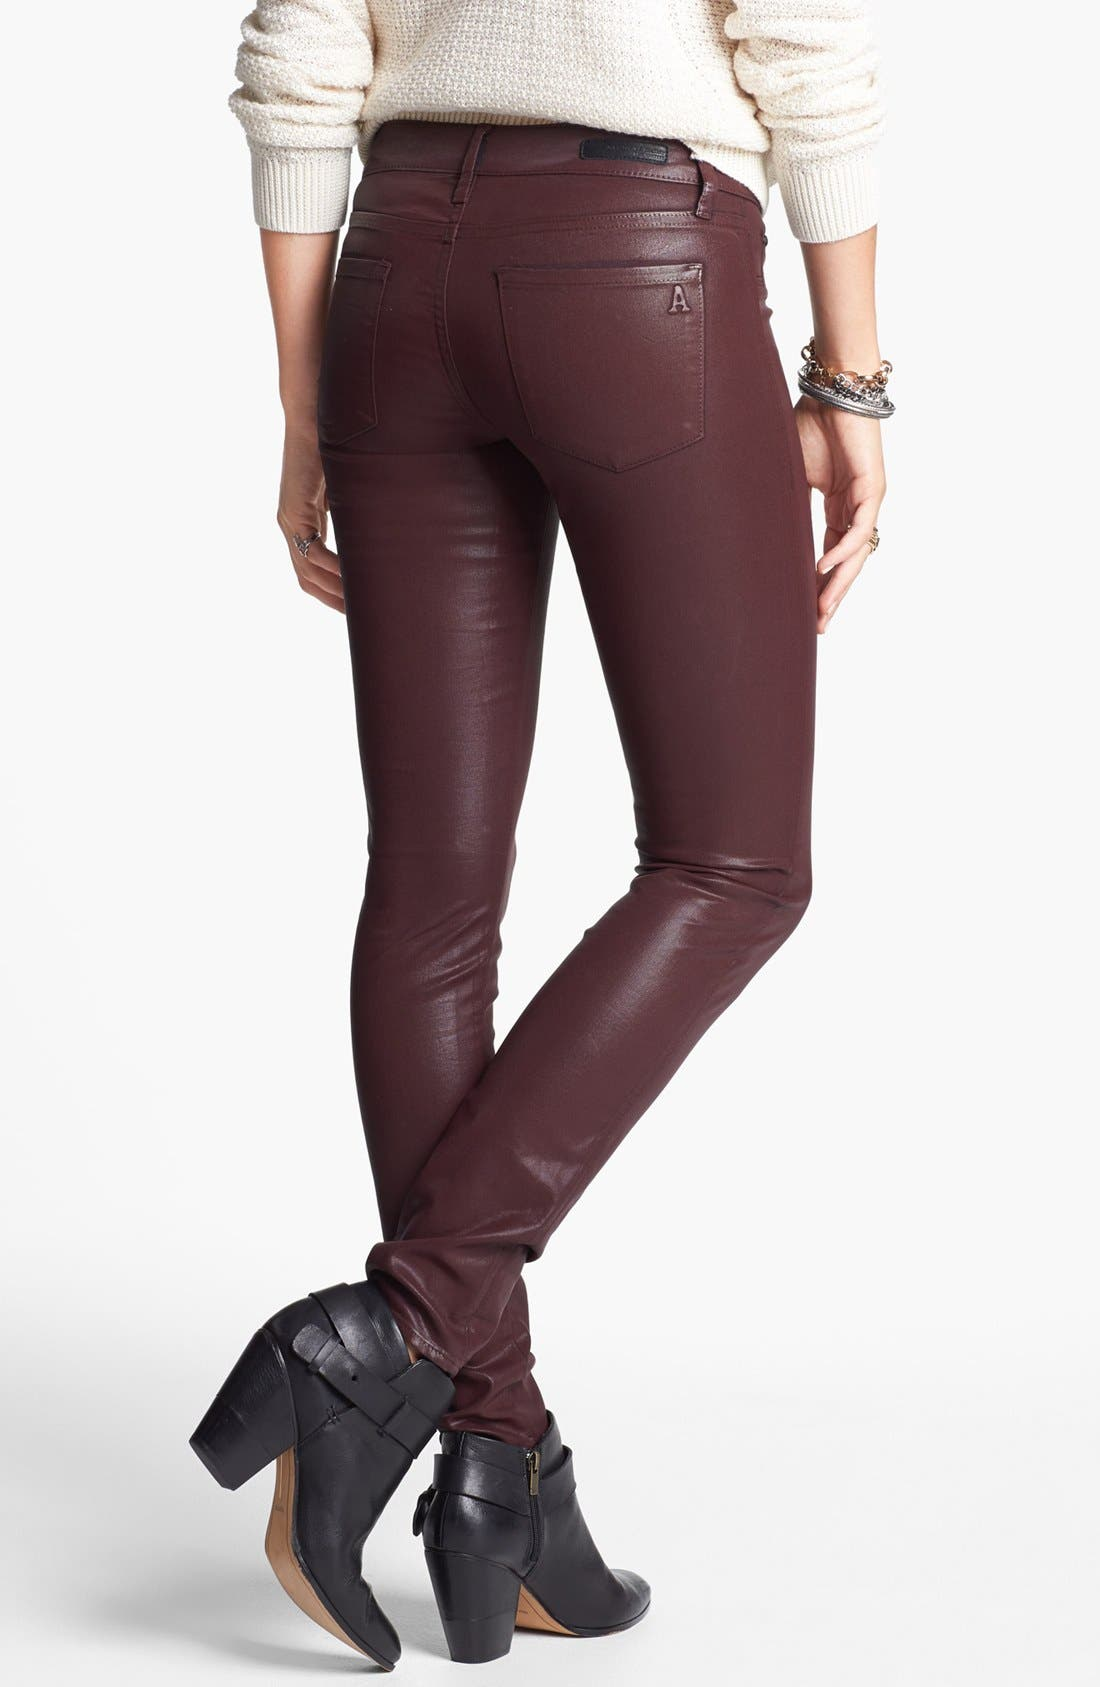 Alternate Image 2  - Articles of Society 'Mya' Coated Skinny Jeans (Ox Blood) (Online Only)